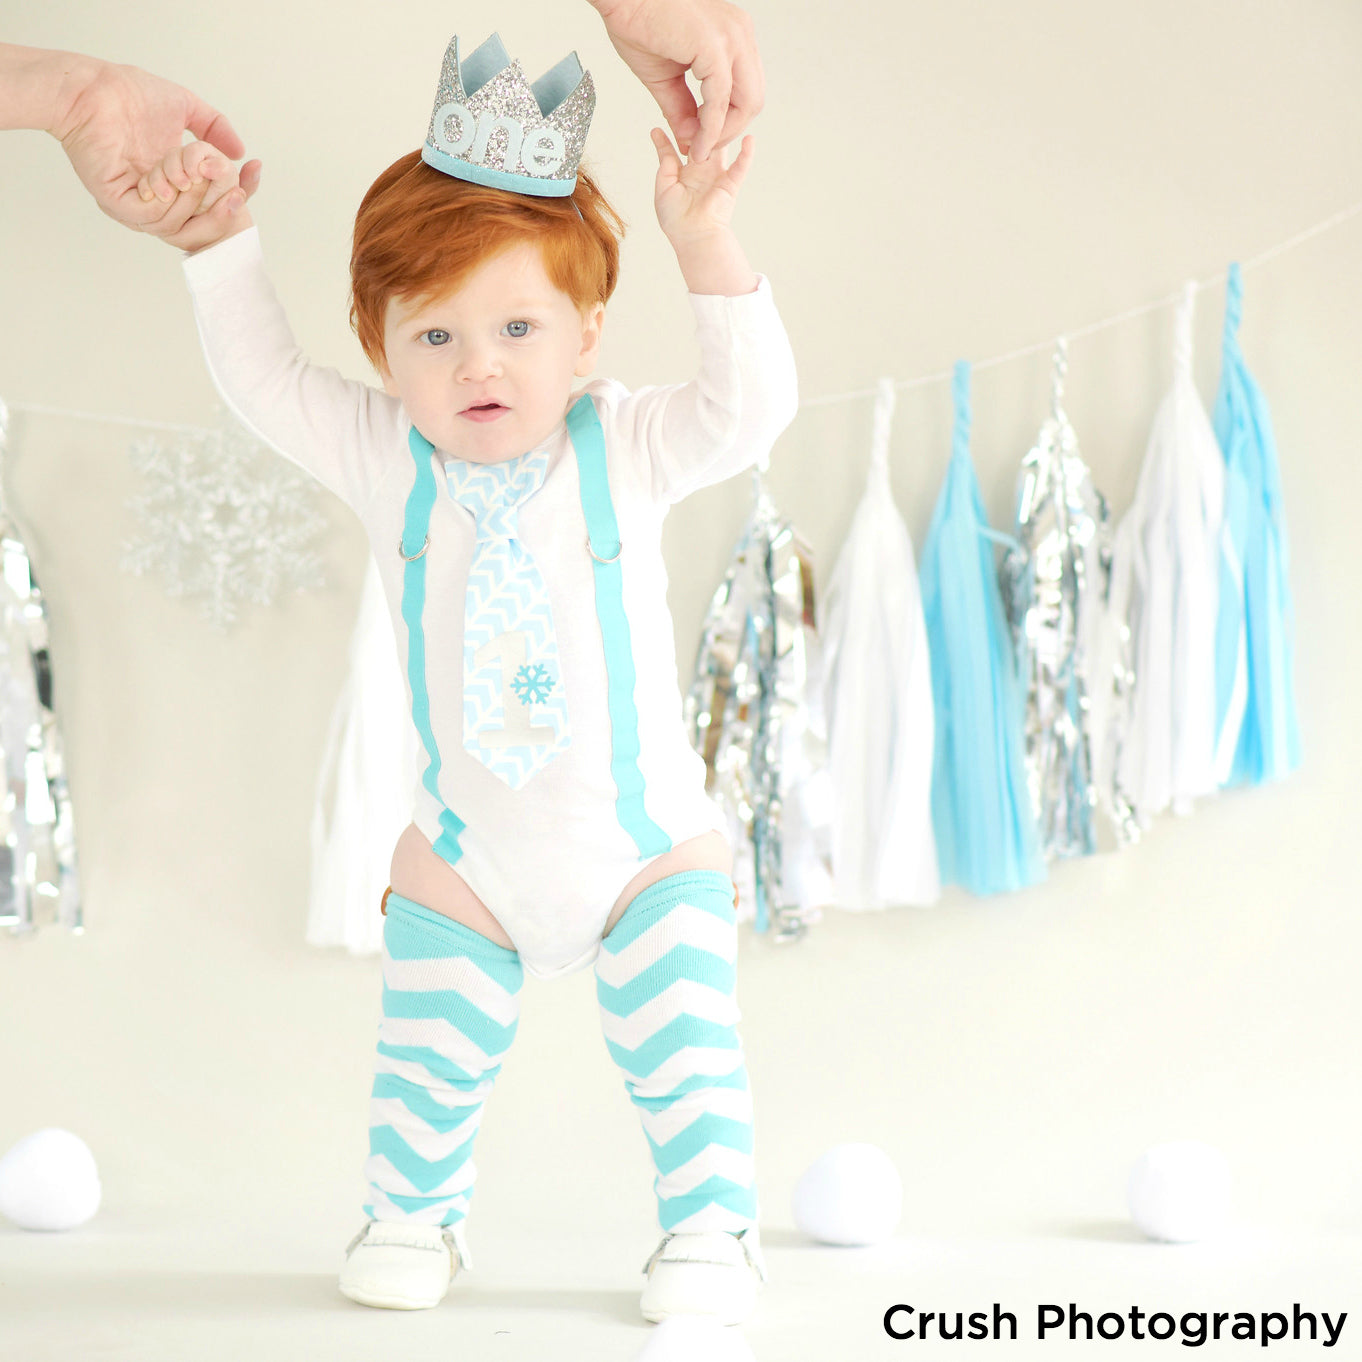 Baby Boy Cake Smash Ideas: Winter Onederland